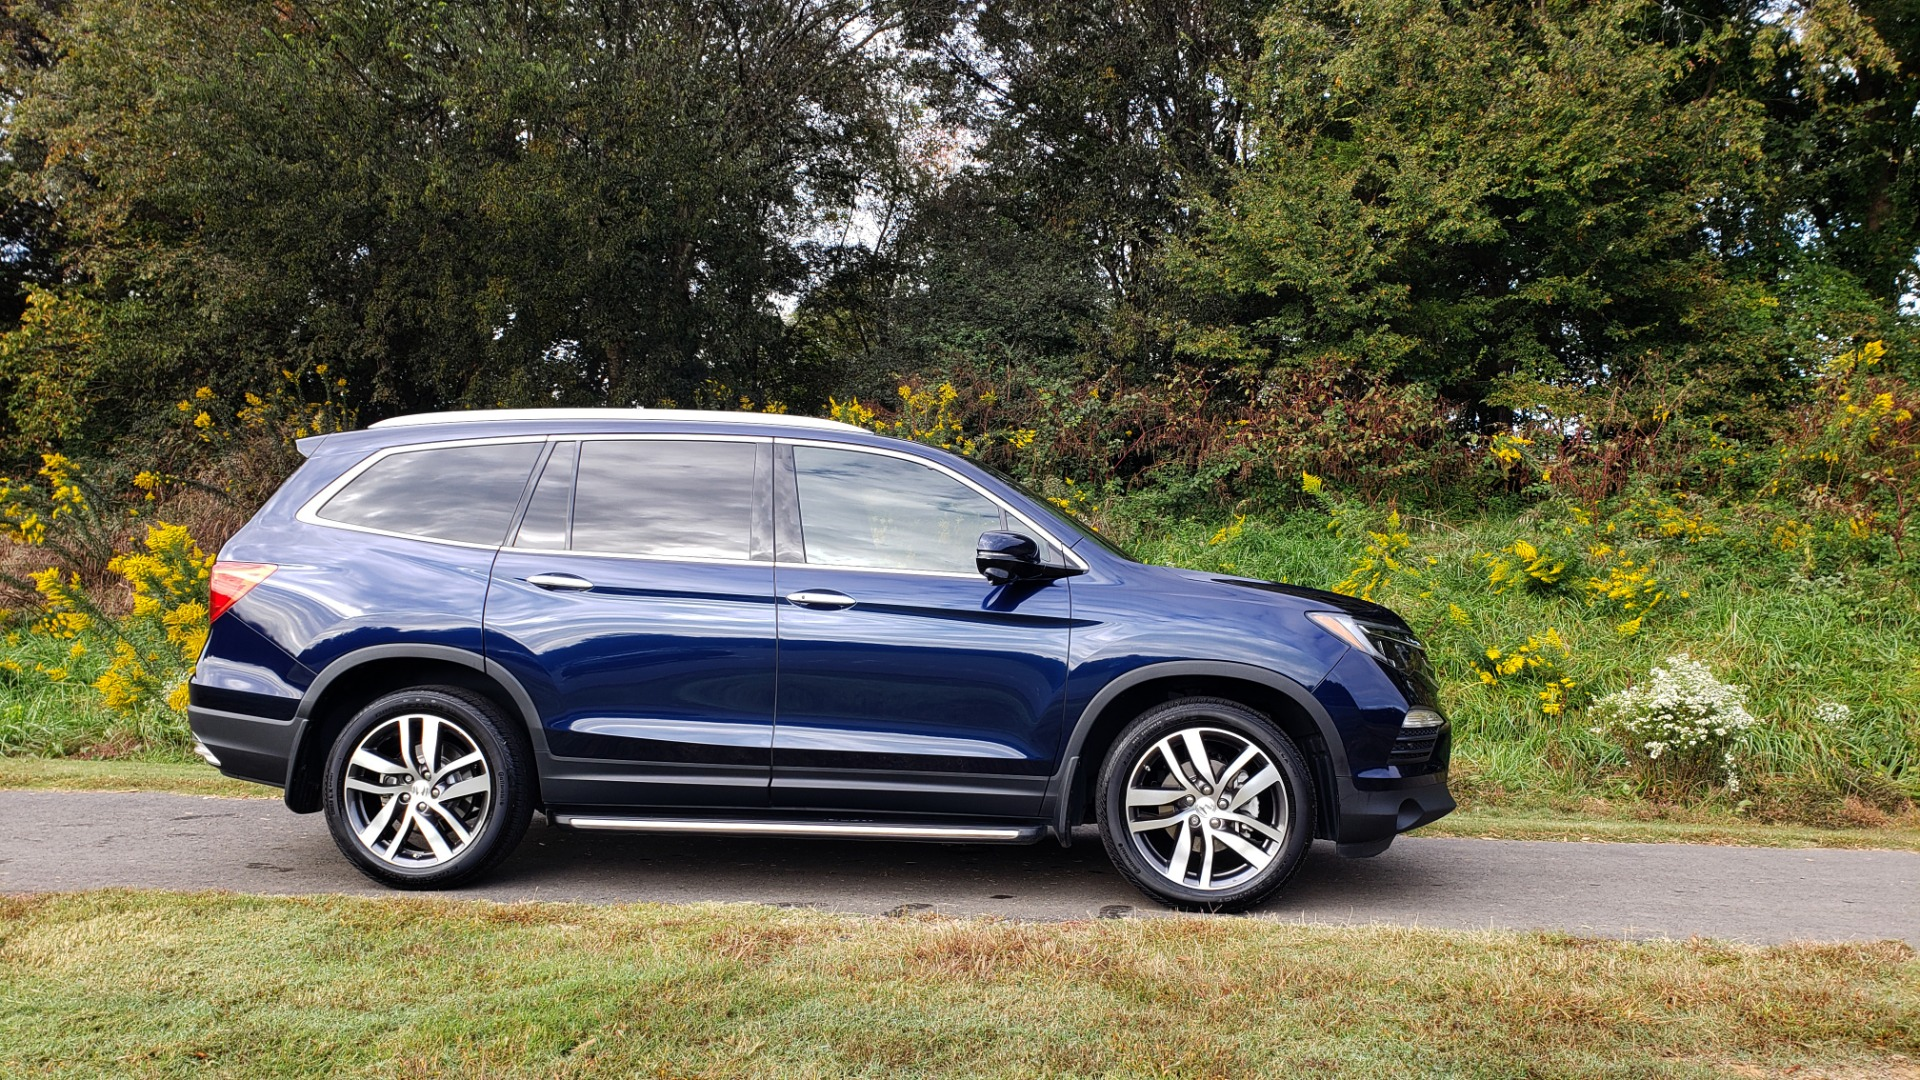 Used 2017 Honda PILOT TOURING 2WD / NAV / SUNROOF / 3-ROW / ENT SYS / REARVIEW for sale Sold at Formula Imports in Charlotte NC 28227 6